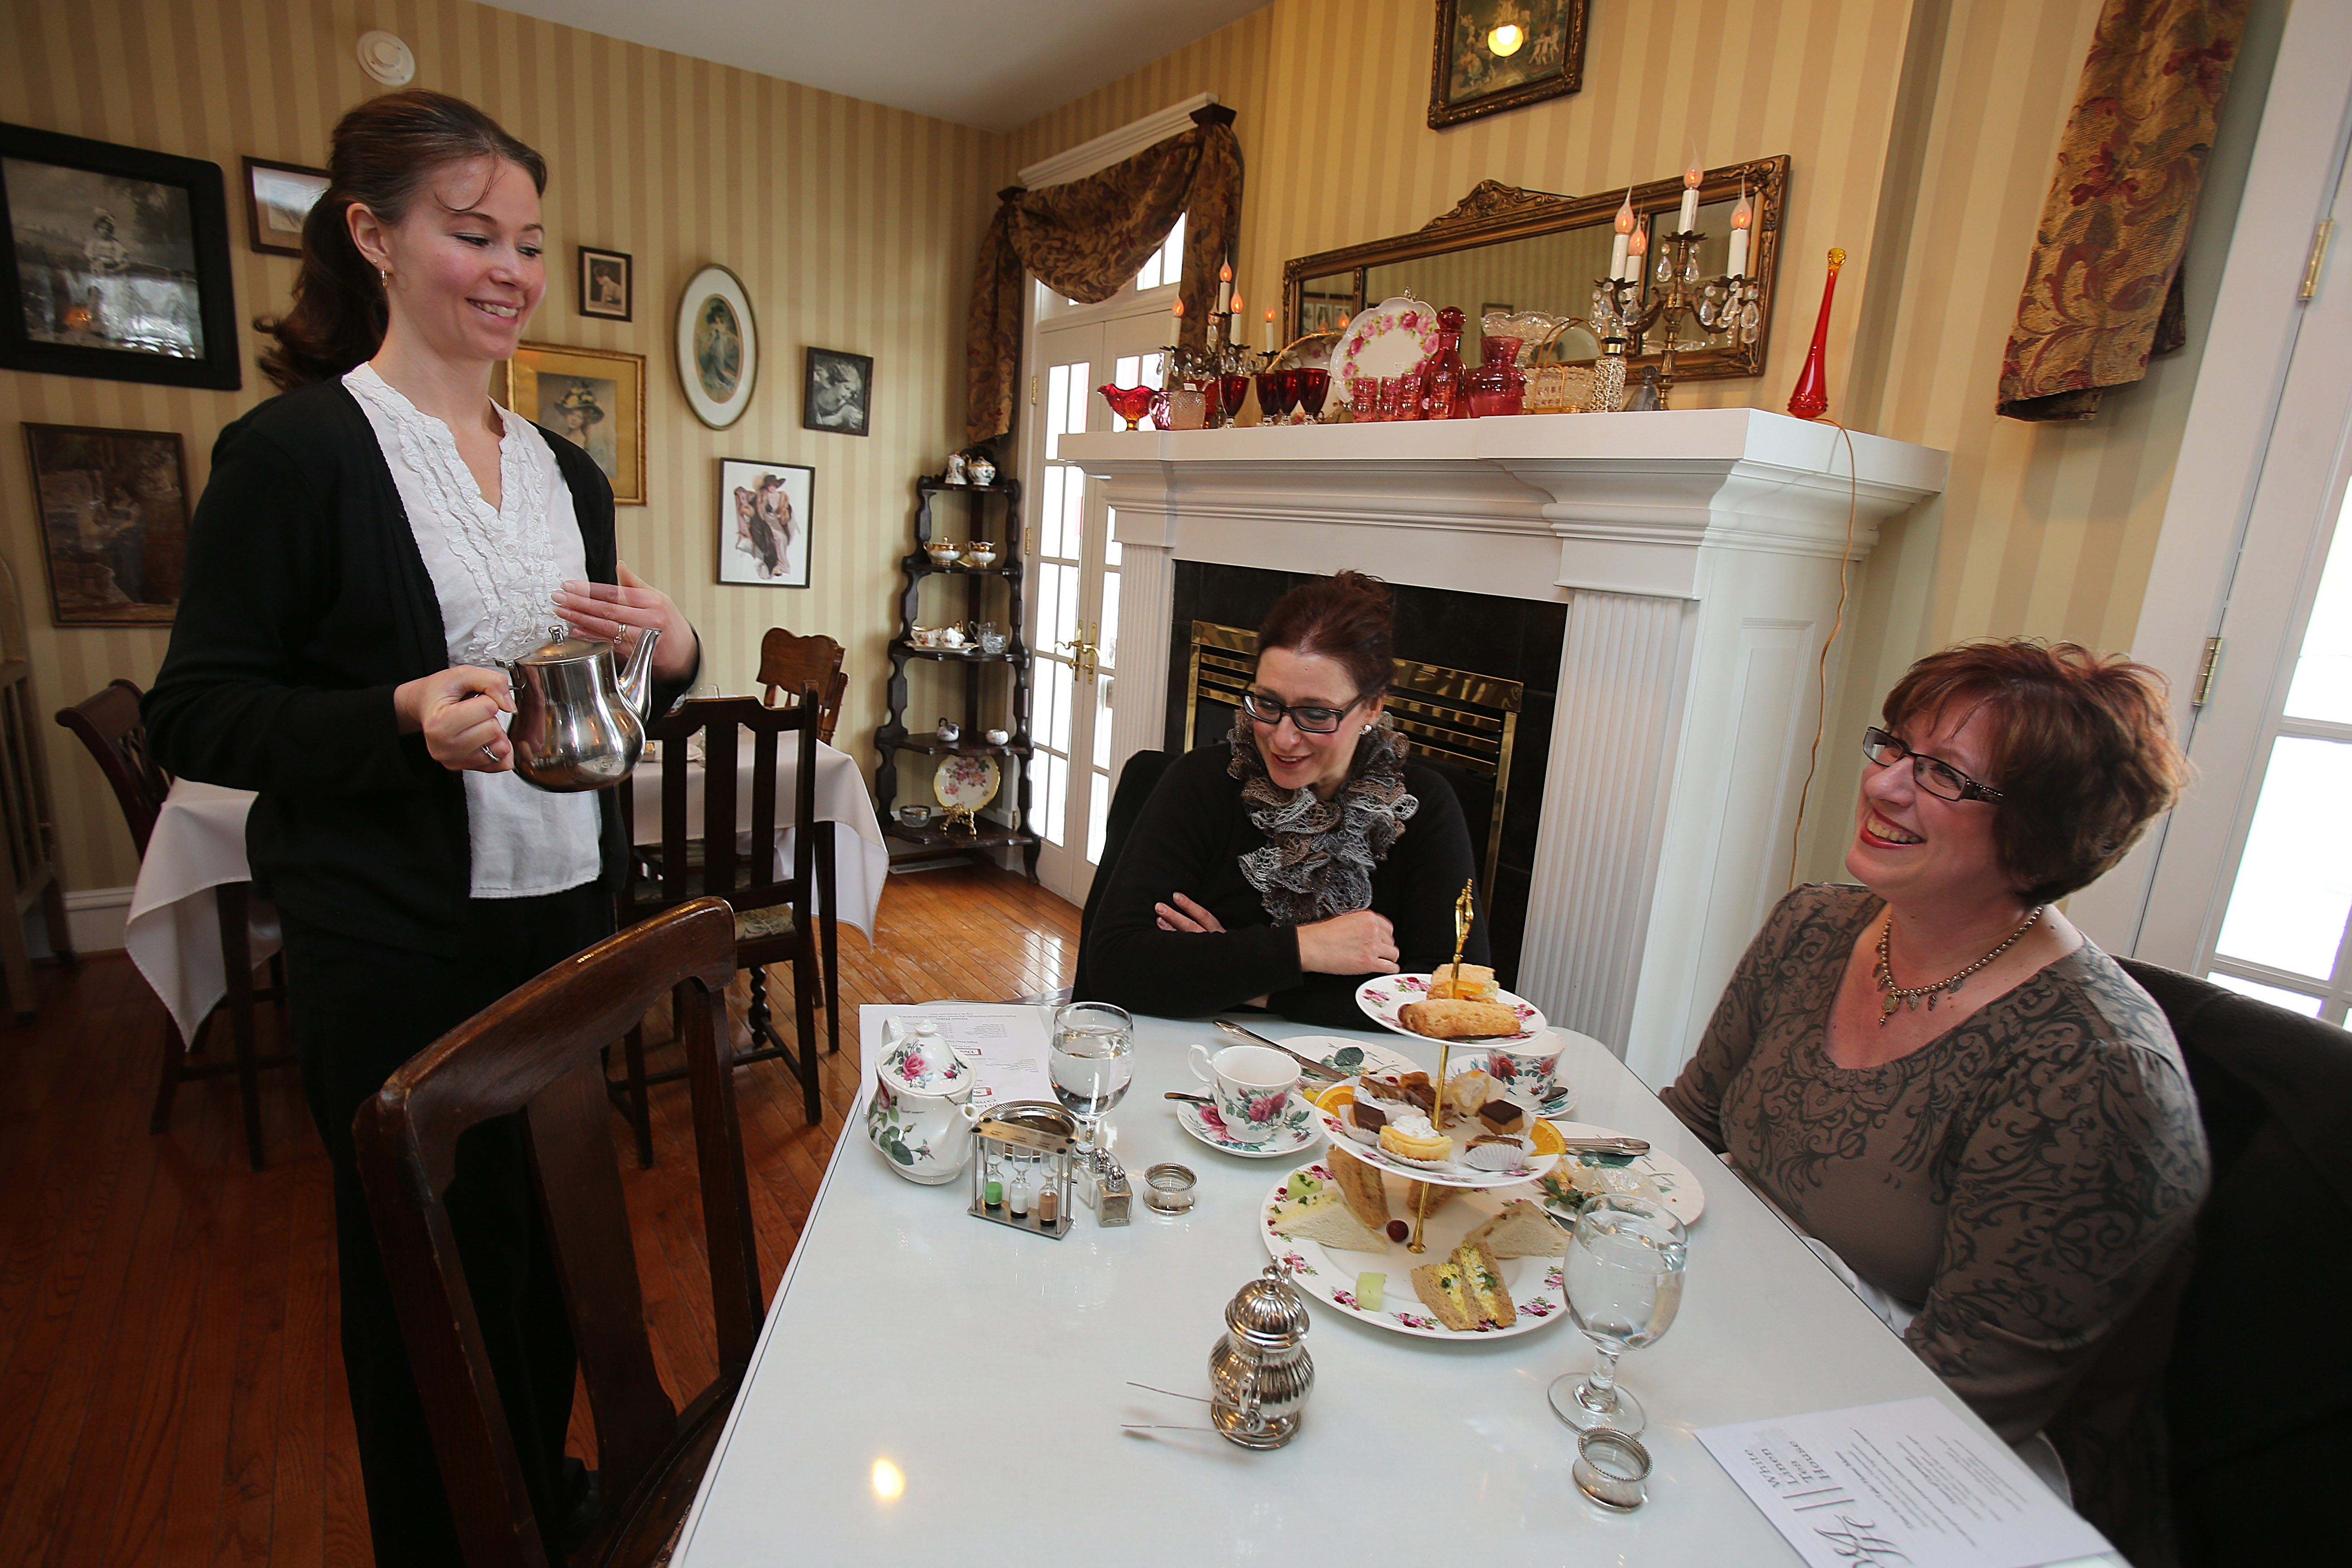 Server Tracy Bauch, left, tends to customers Dimitra Sergakis, middle, of Grand Island, and Kathy Stromecki, of Colden, in the White Linen Tea House at 6610 Shawnee Road in Wheatfield.